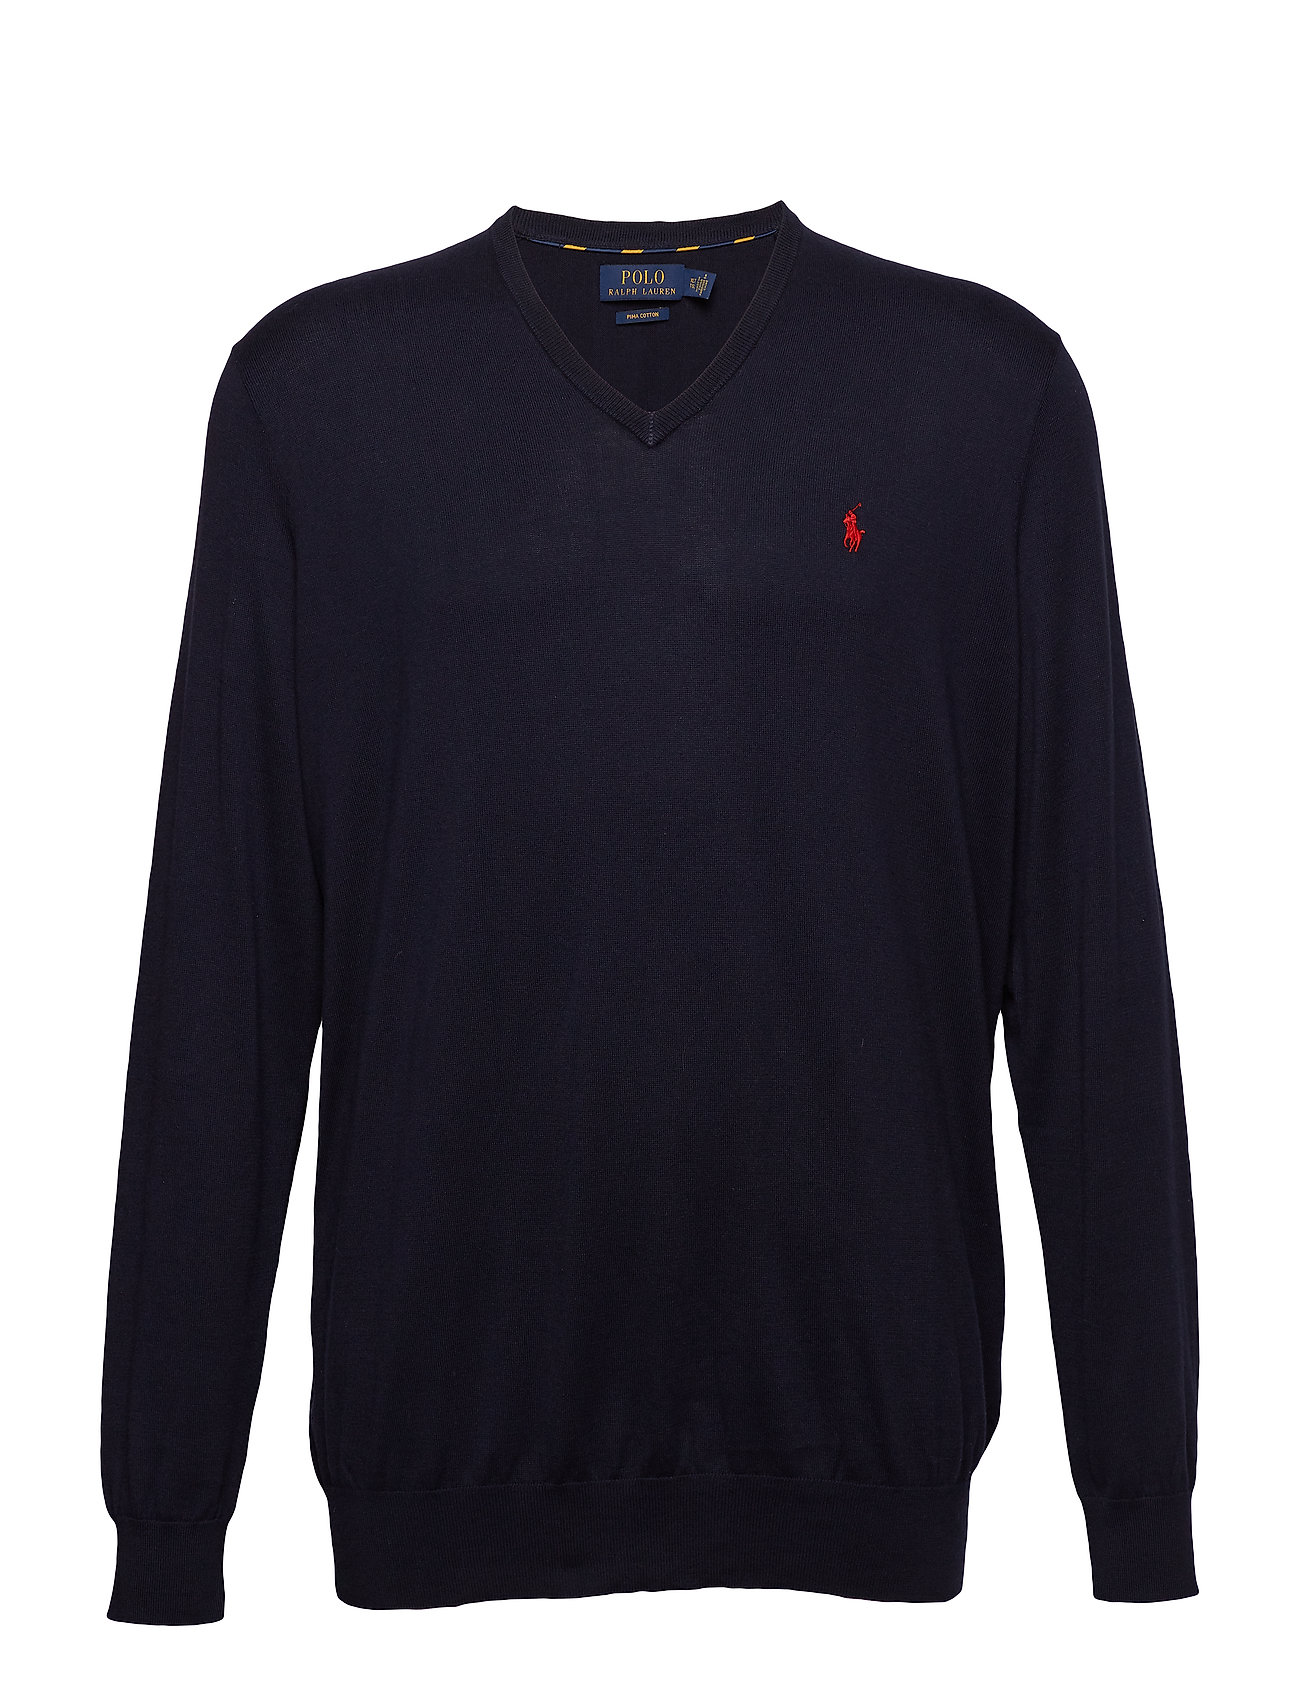 Polo Ralph Lauren Big & Tall Cotton V-Neck Sweater - HUNTER NAVY